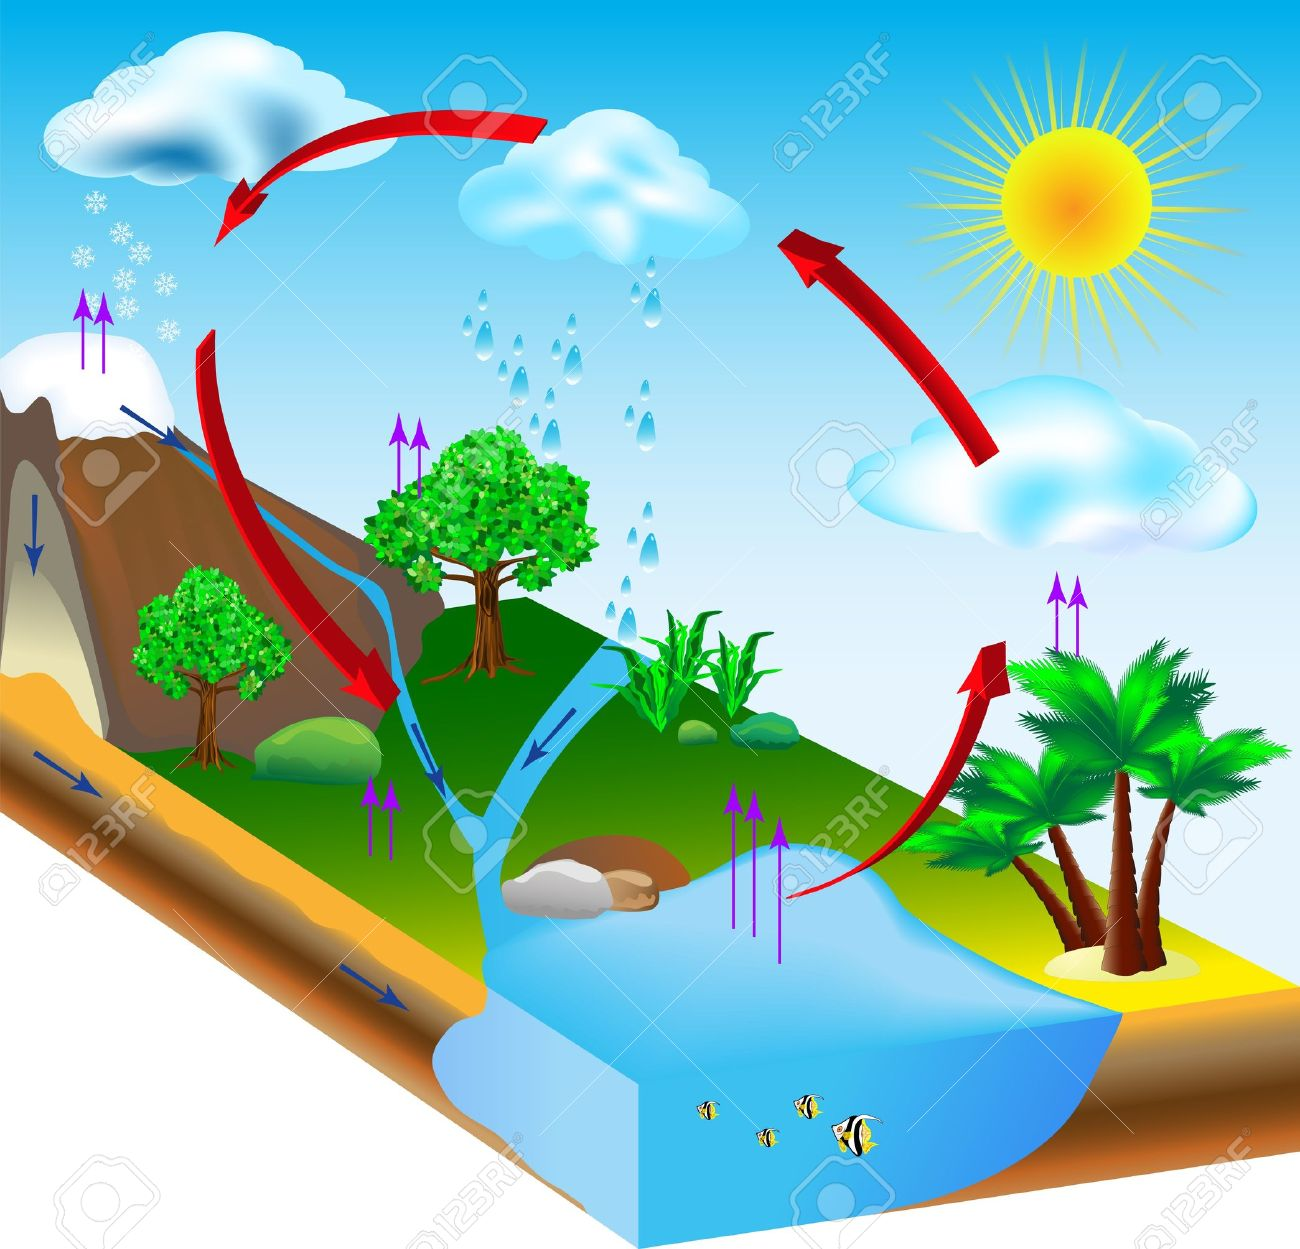 Water Cycle Diagram Condensation Evaporation And Environment Royalty Free Cliparts Vectors And Stock Illustration Image 18963147